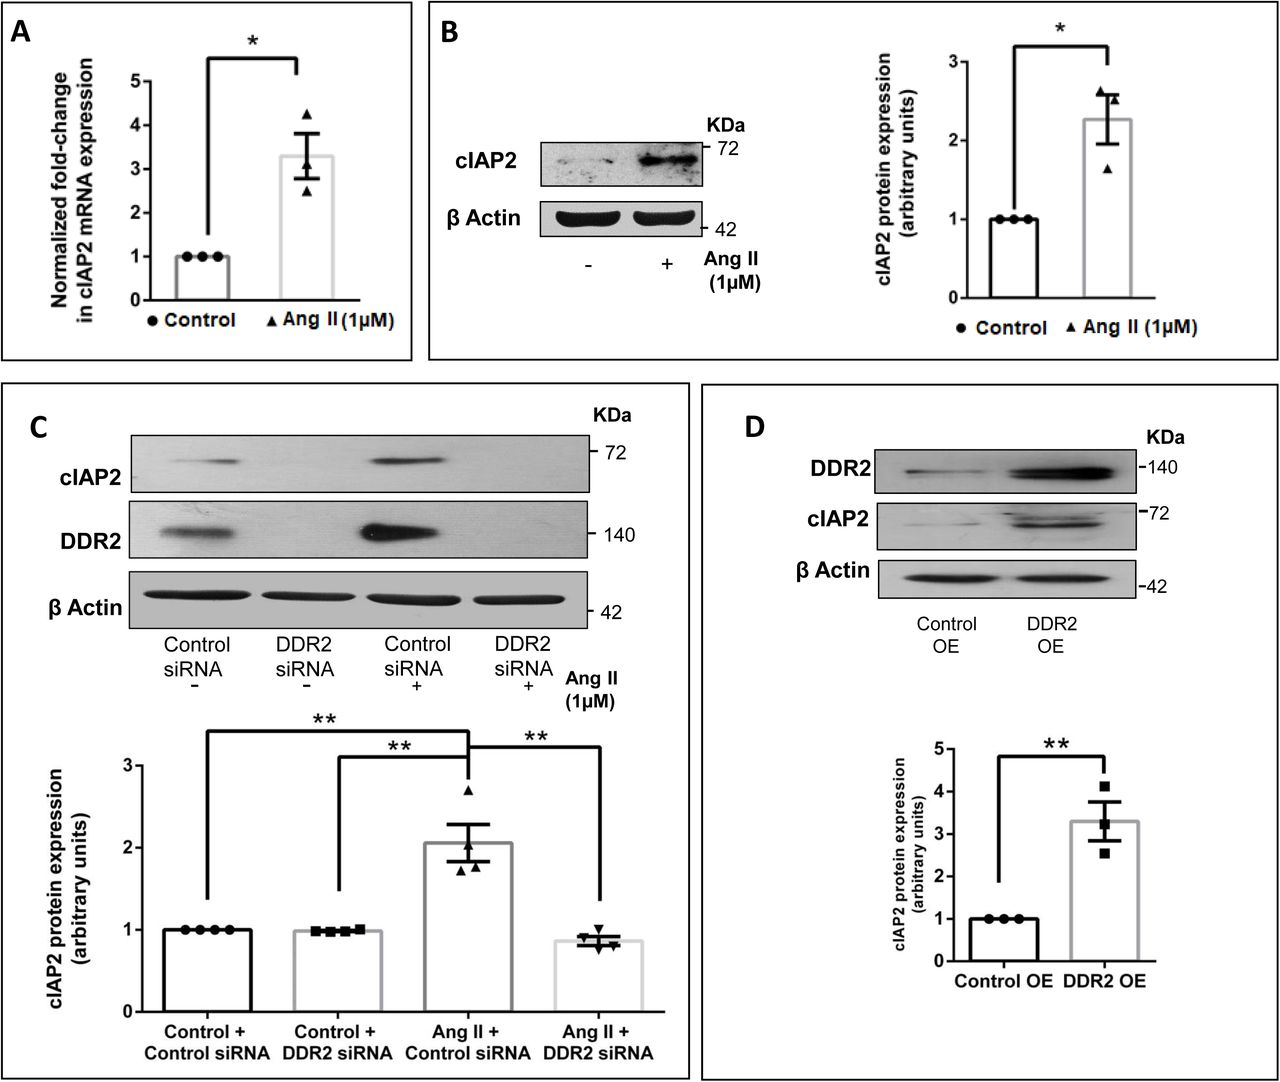 DDR2 mediates Ang II-stimulated expression of anti-apoptotic cIAP2 in cardiac fibroblasts. Sub-confluent quiescent cultures of cardiac fibroblasts were stimulated with Ang II (1μM). (A) cIAP2 mRNA levels were determined by Taqman Real-time PCR analysis at 6h of Ang II treatment. β-actin served as the endogenous control. Significance was determined by Student's t test, *p